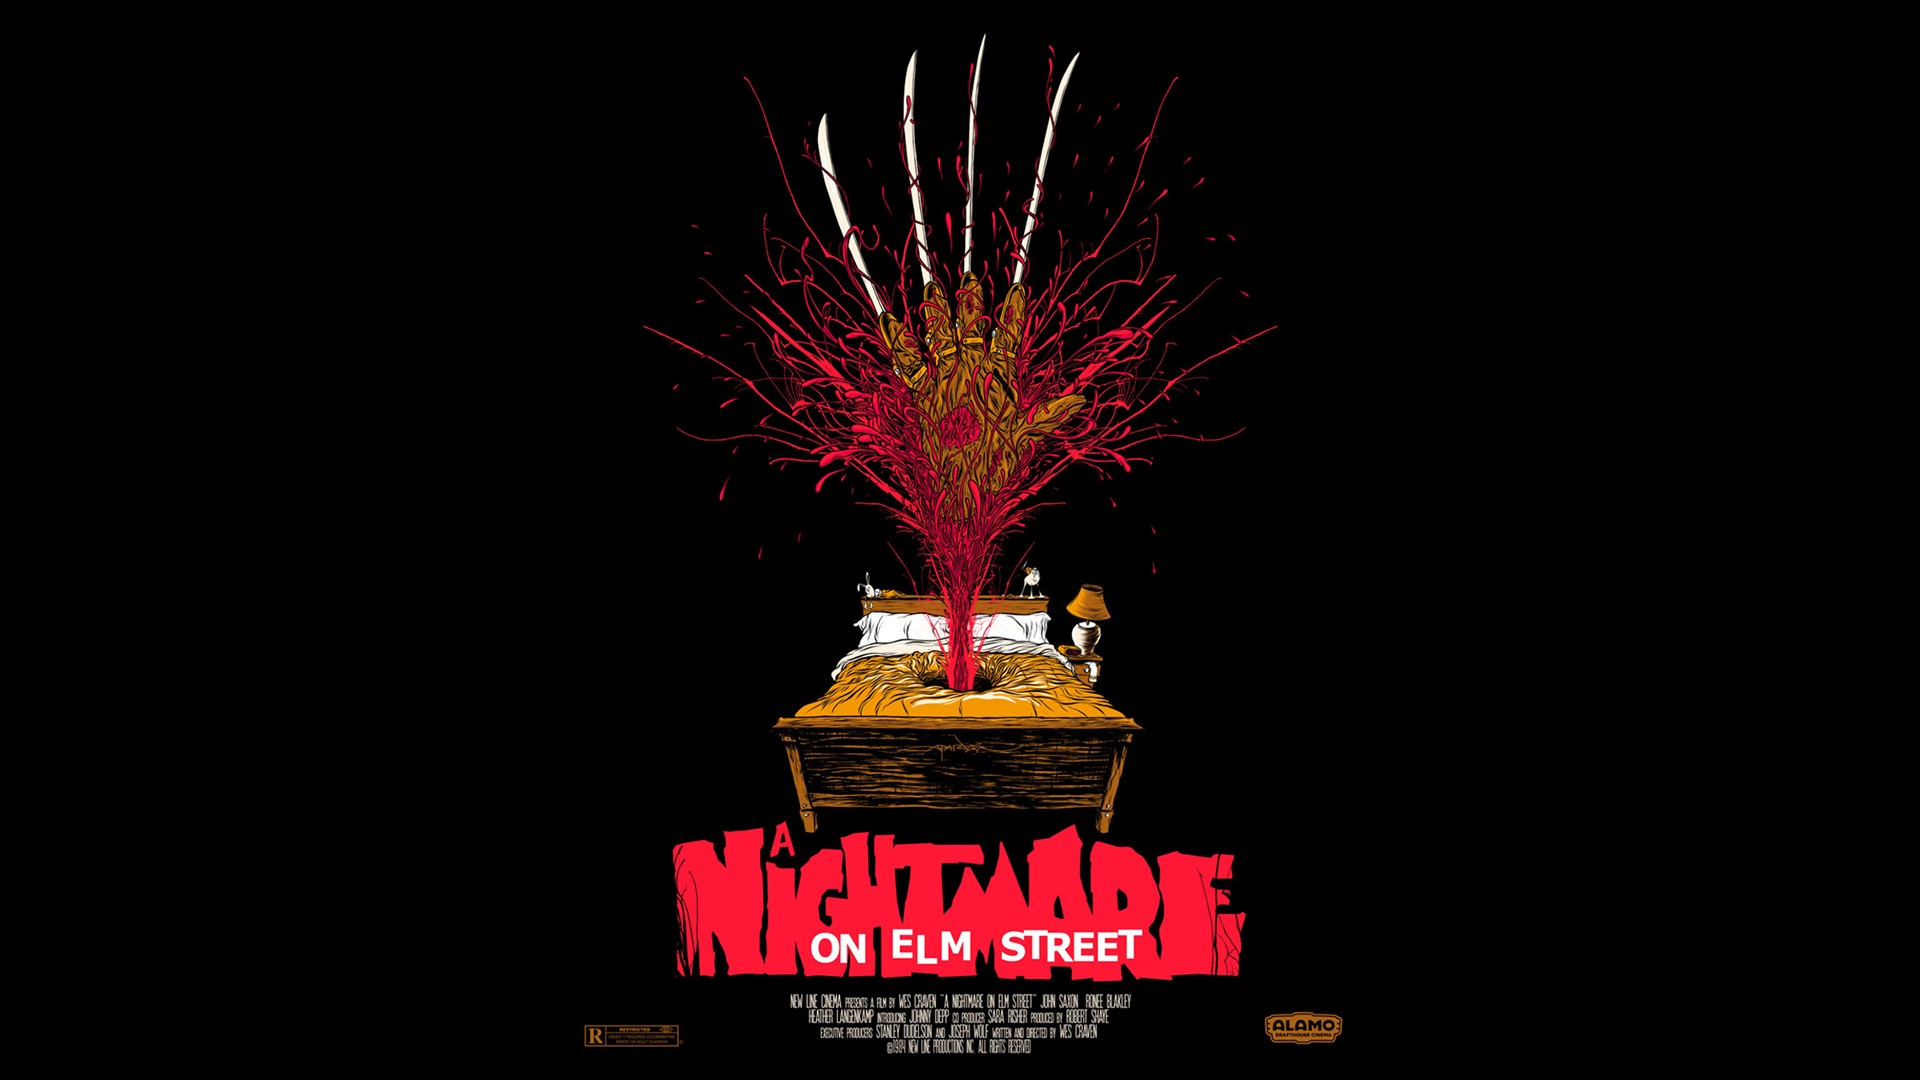 A-Nightmare-On-Elm-Street-Movie-Poster-1920-x-1080-Need-iPhone-S-Plus-Backgroun-wallpaper-wpc5801875